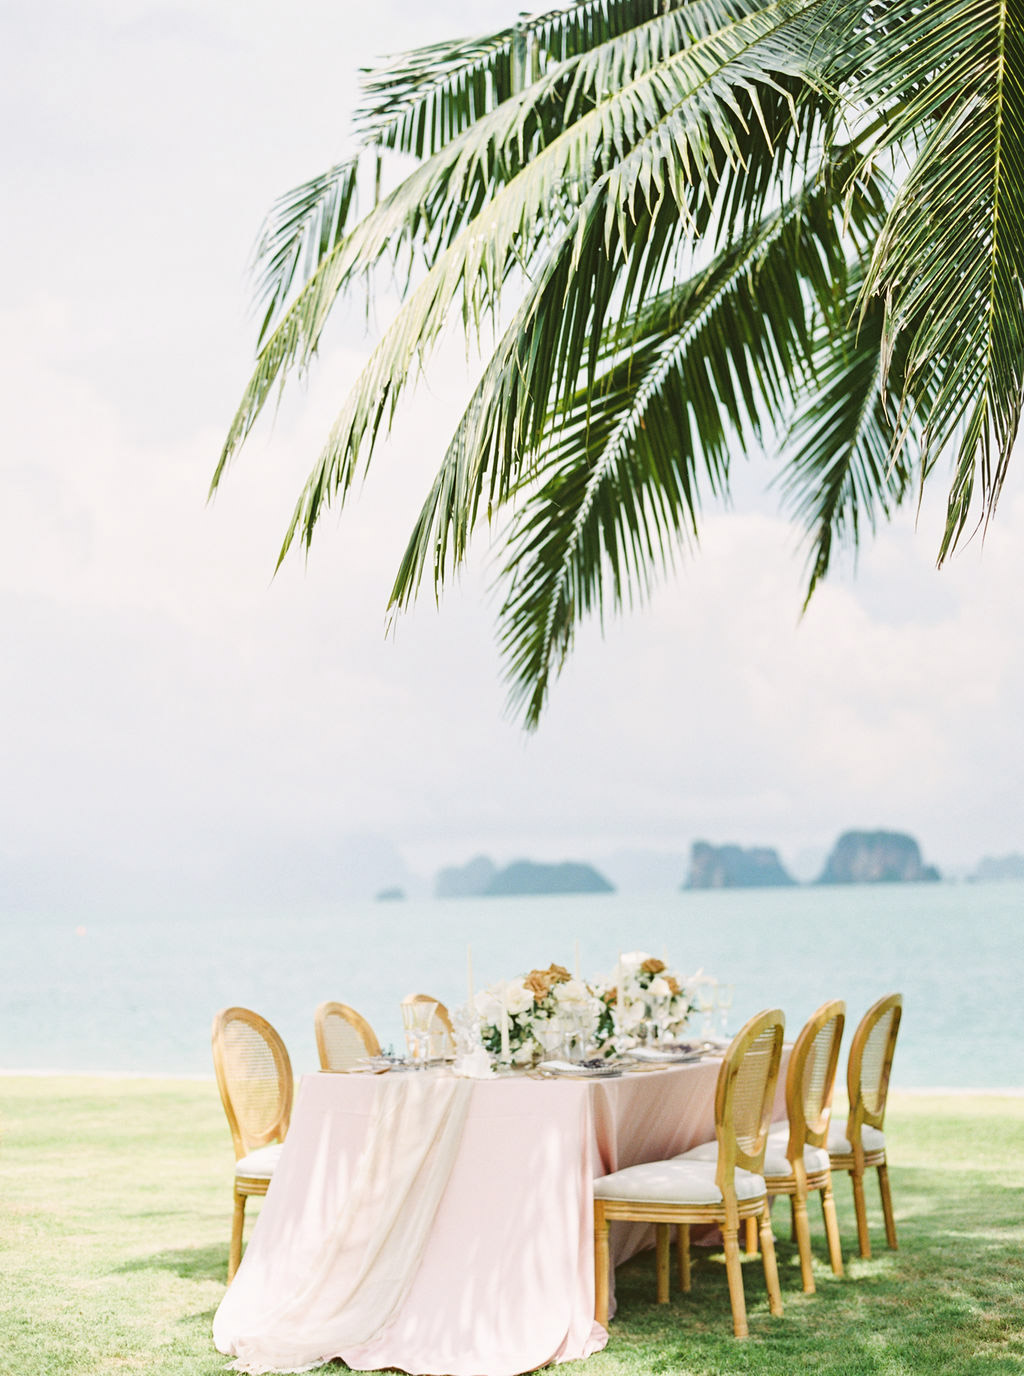 Thailand Wedding Venues Destination Koh Yao Noi By Fine Art Film Wedding Photographer Sheri McMahon-00037.jpg